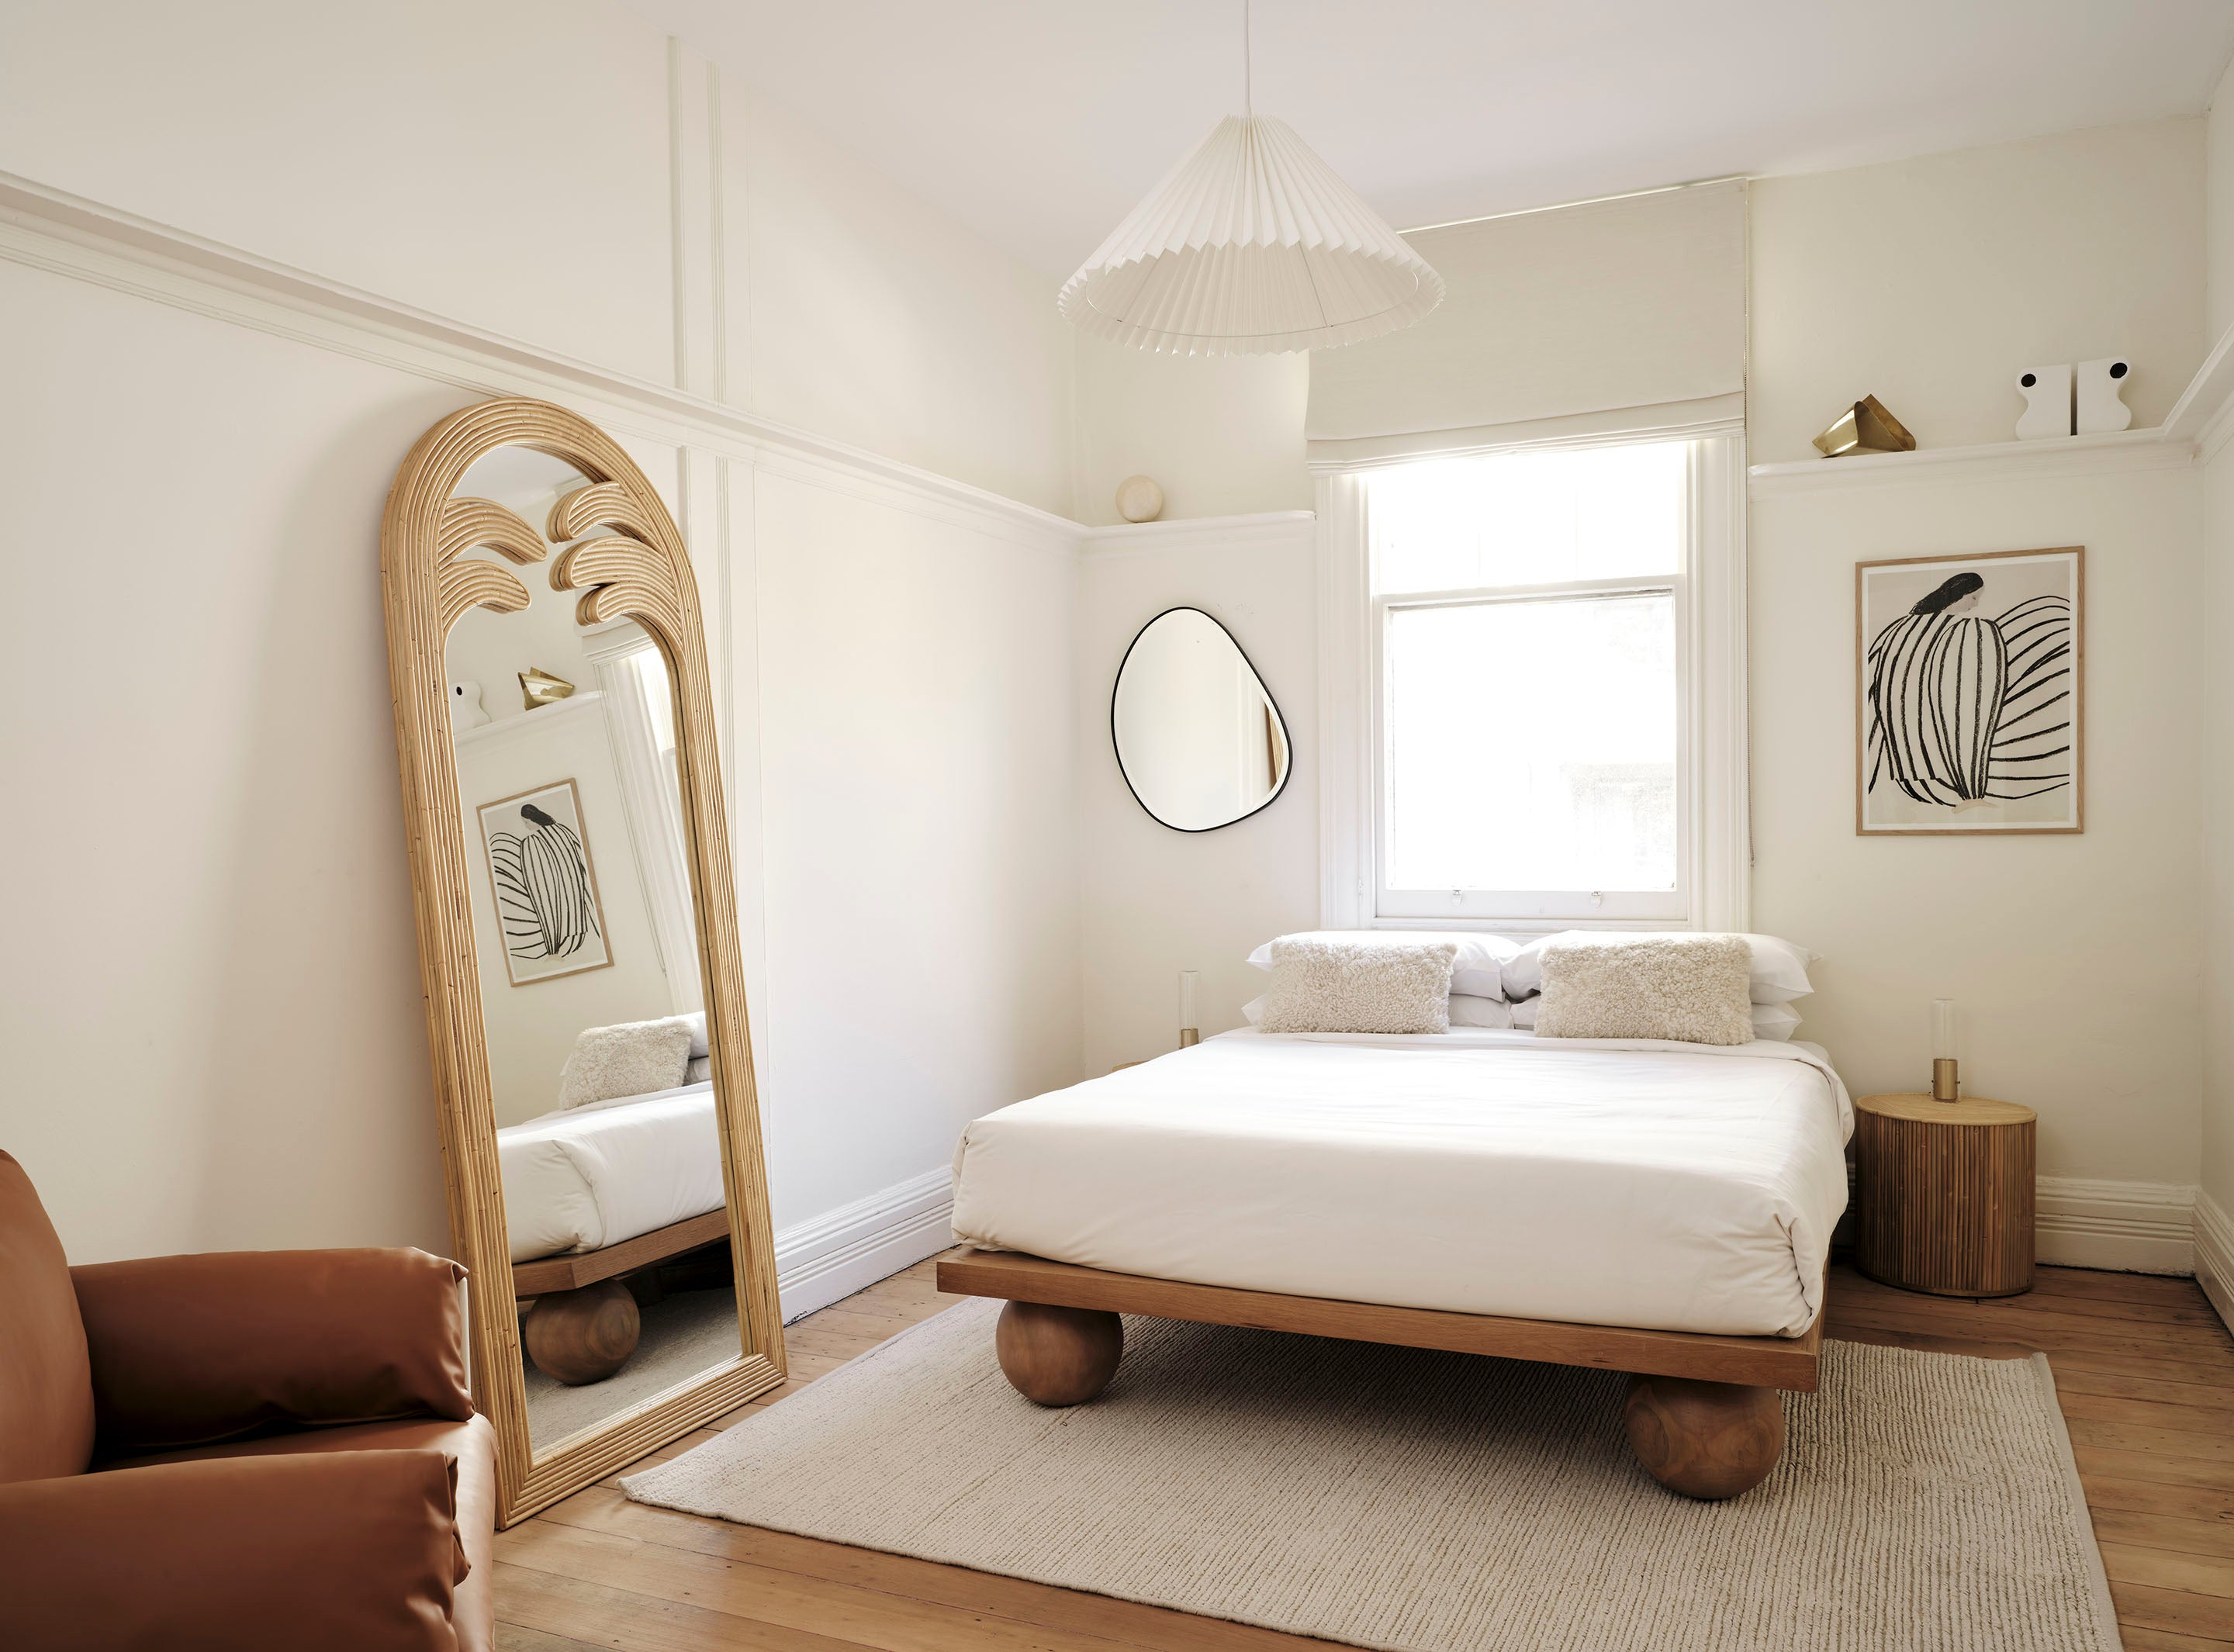 Sarah Ellison's Three Rooms apartment, featuring our Pebble Mirror, the Yoko Bed and the Gabriella Mirror